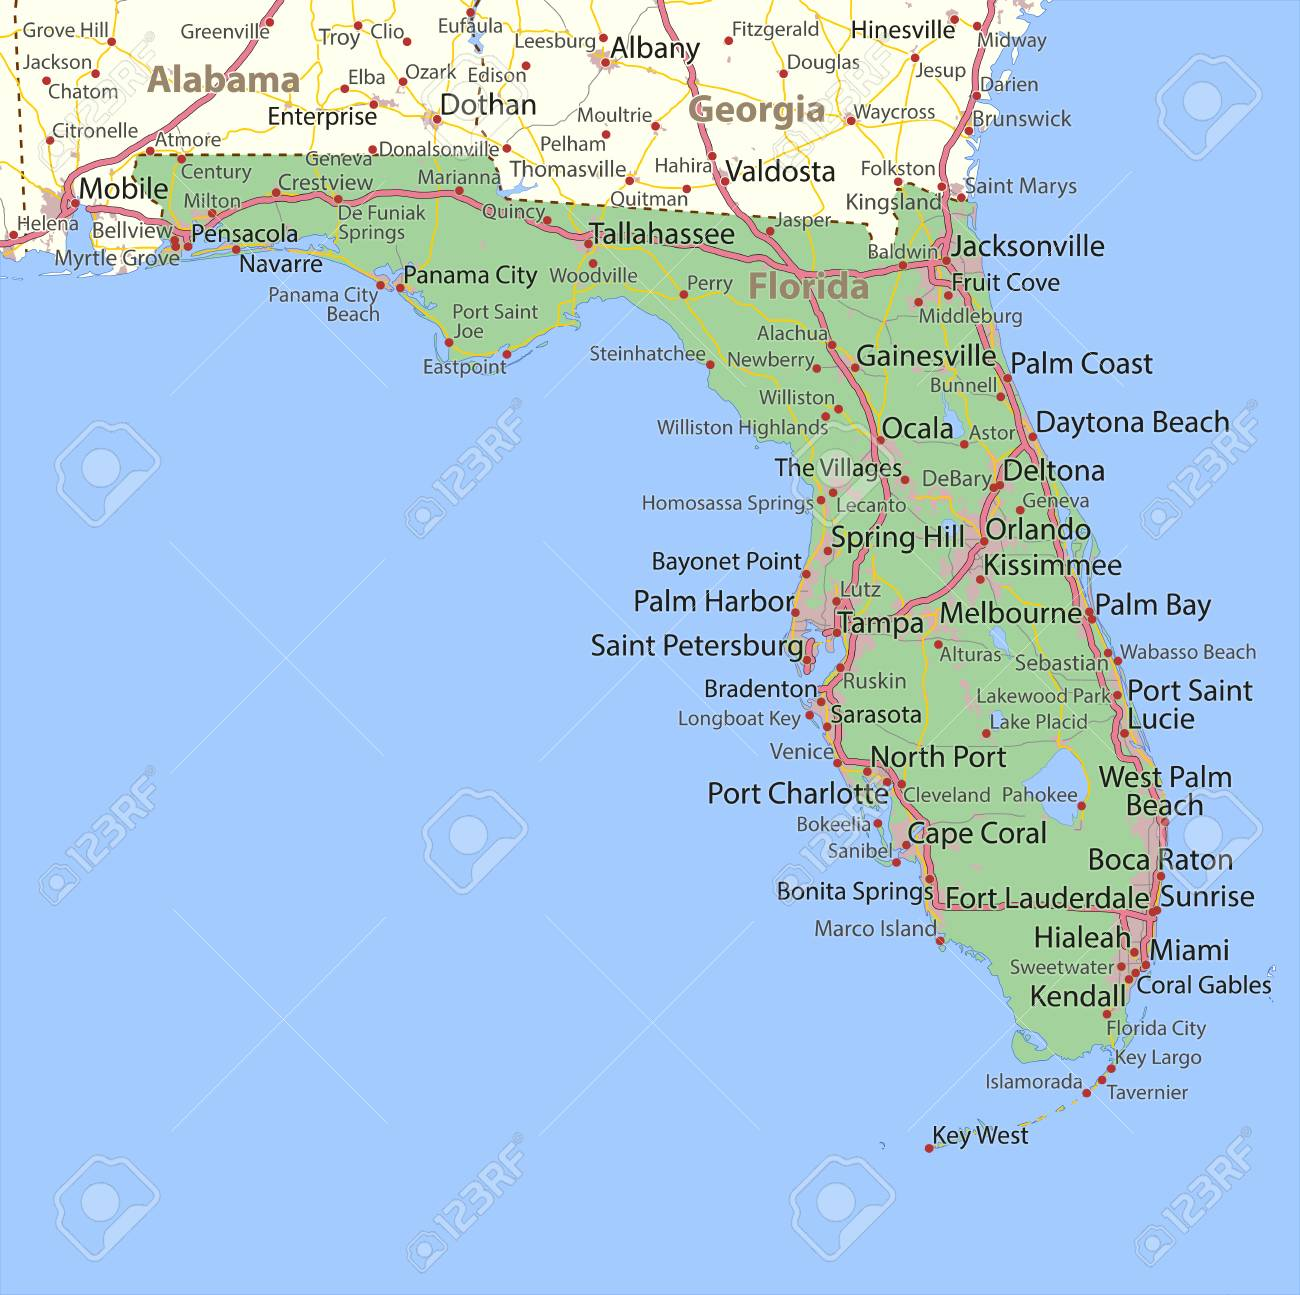 Greenville Florida Map.Map Of Florida Shows State Borders Urban Areas Place Names